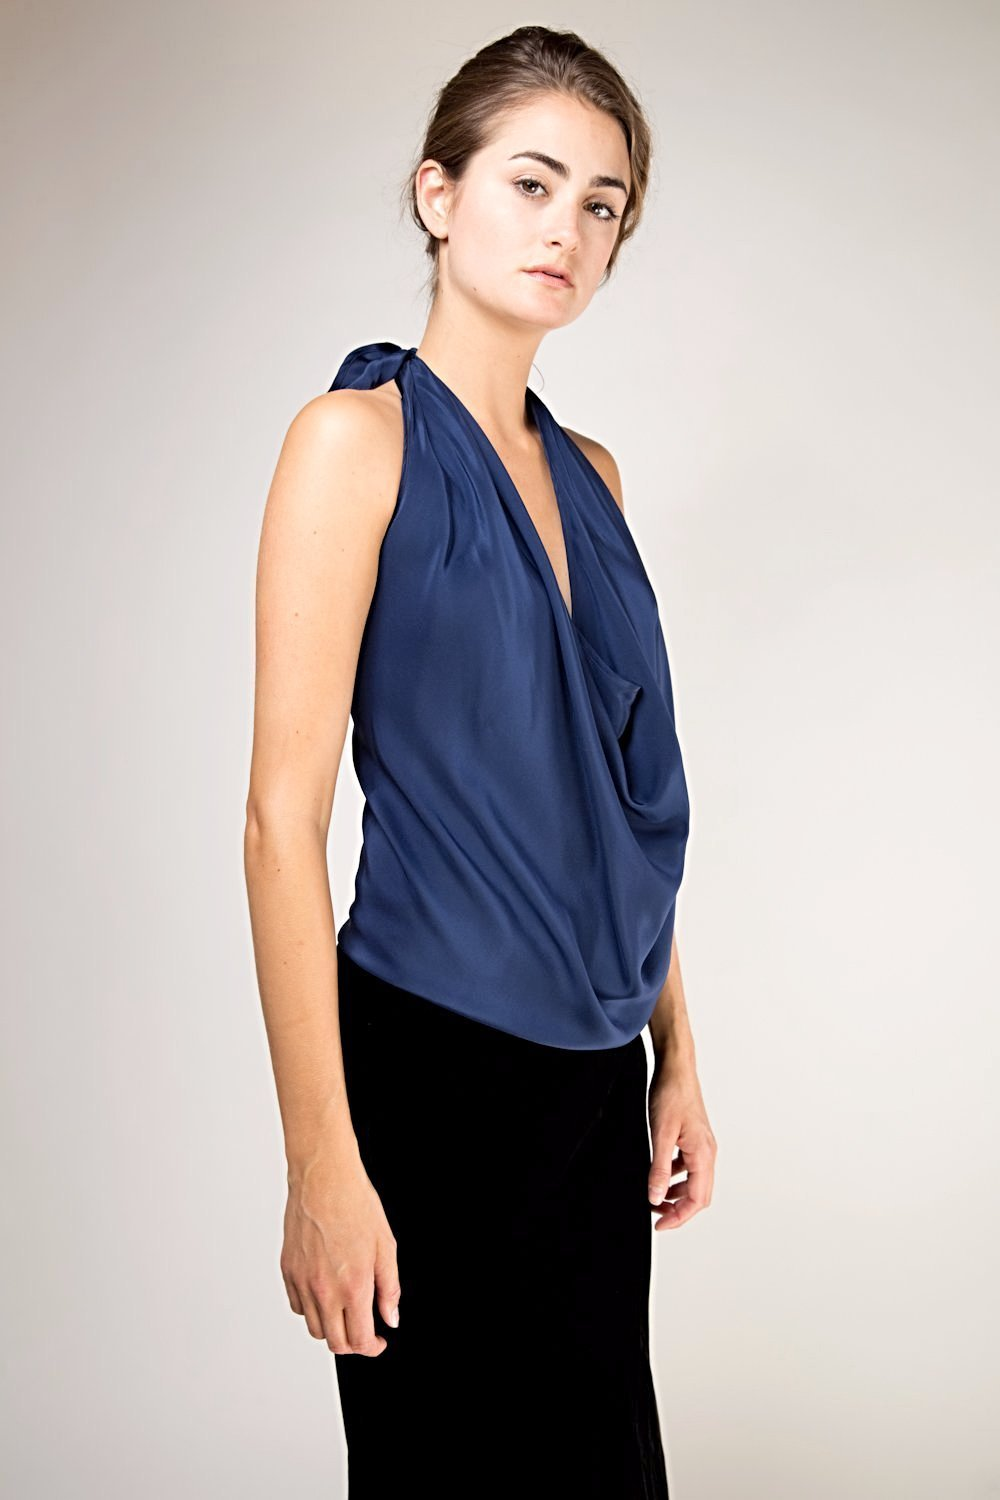 O'hara Silk Top - Royal Blue